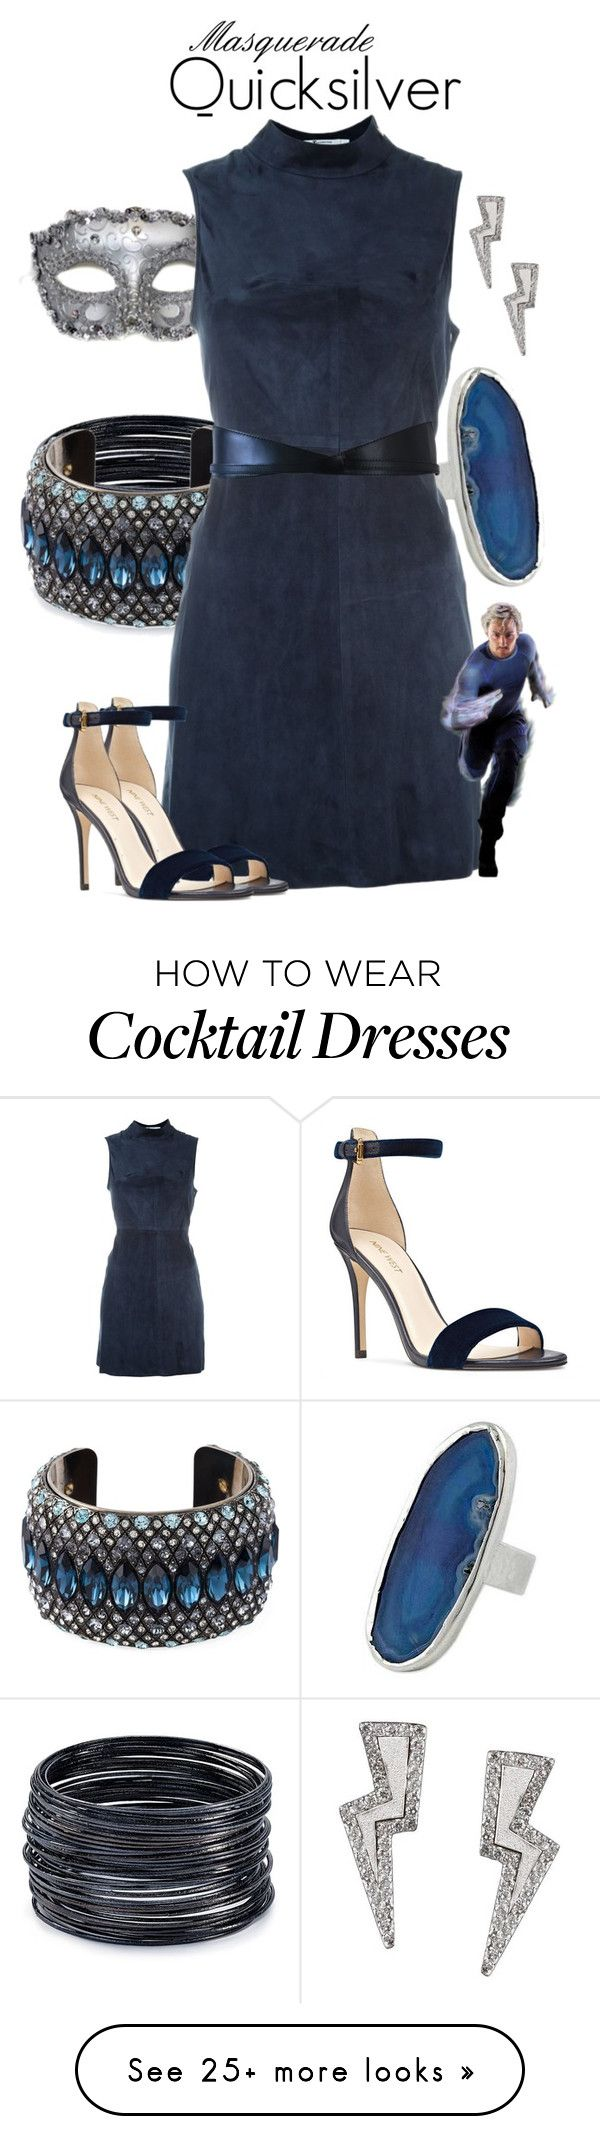 """""""Masquerade: Quicksilver"""" by jivy44 on Polyvore featuring ABS by Allen Schwartz, Masquerade, Lanvin, NOVICA, T By Alexander Wang, Nine West, Chanel and Tessa Packard"""